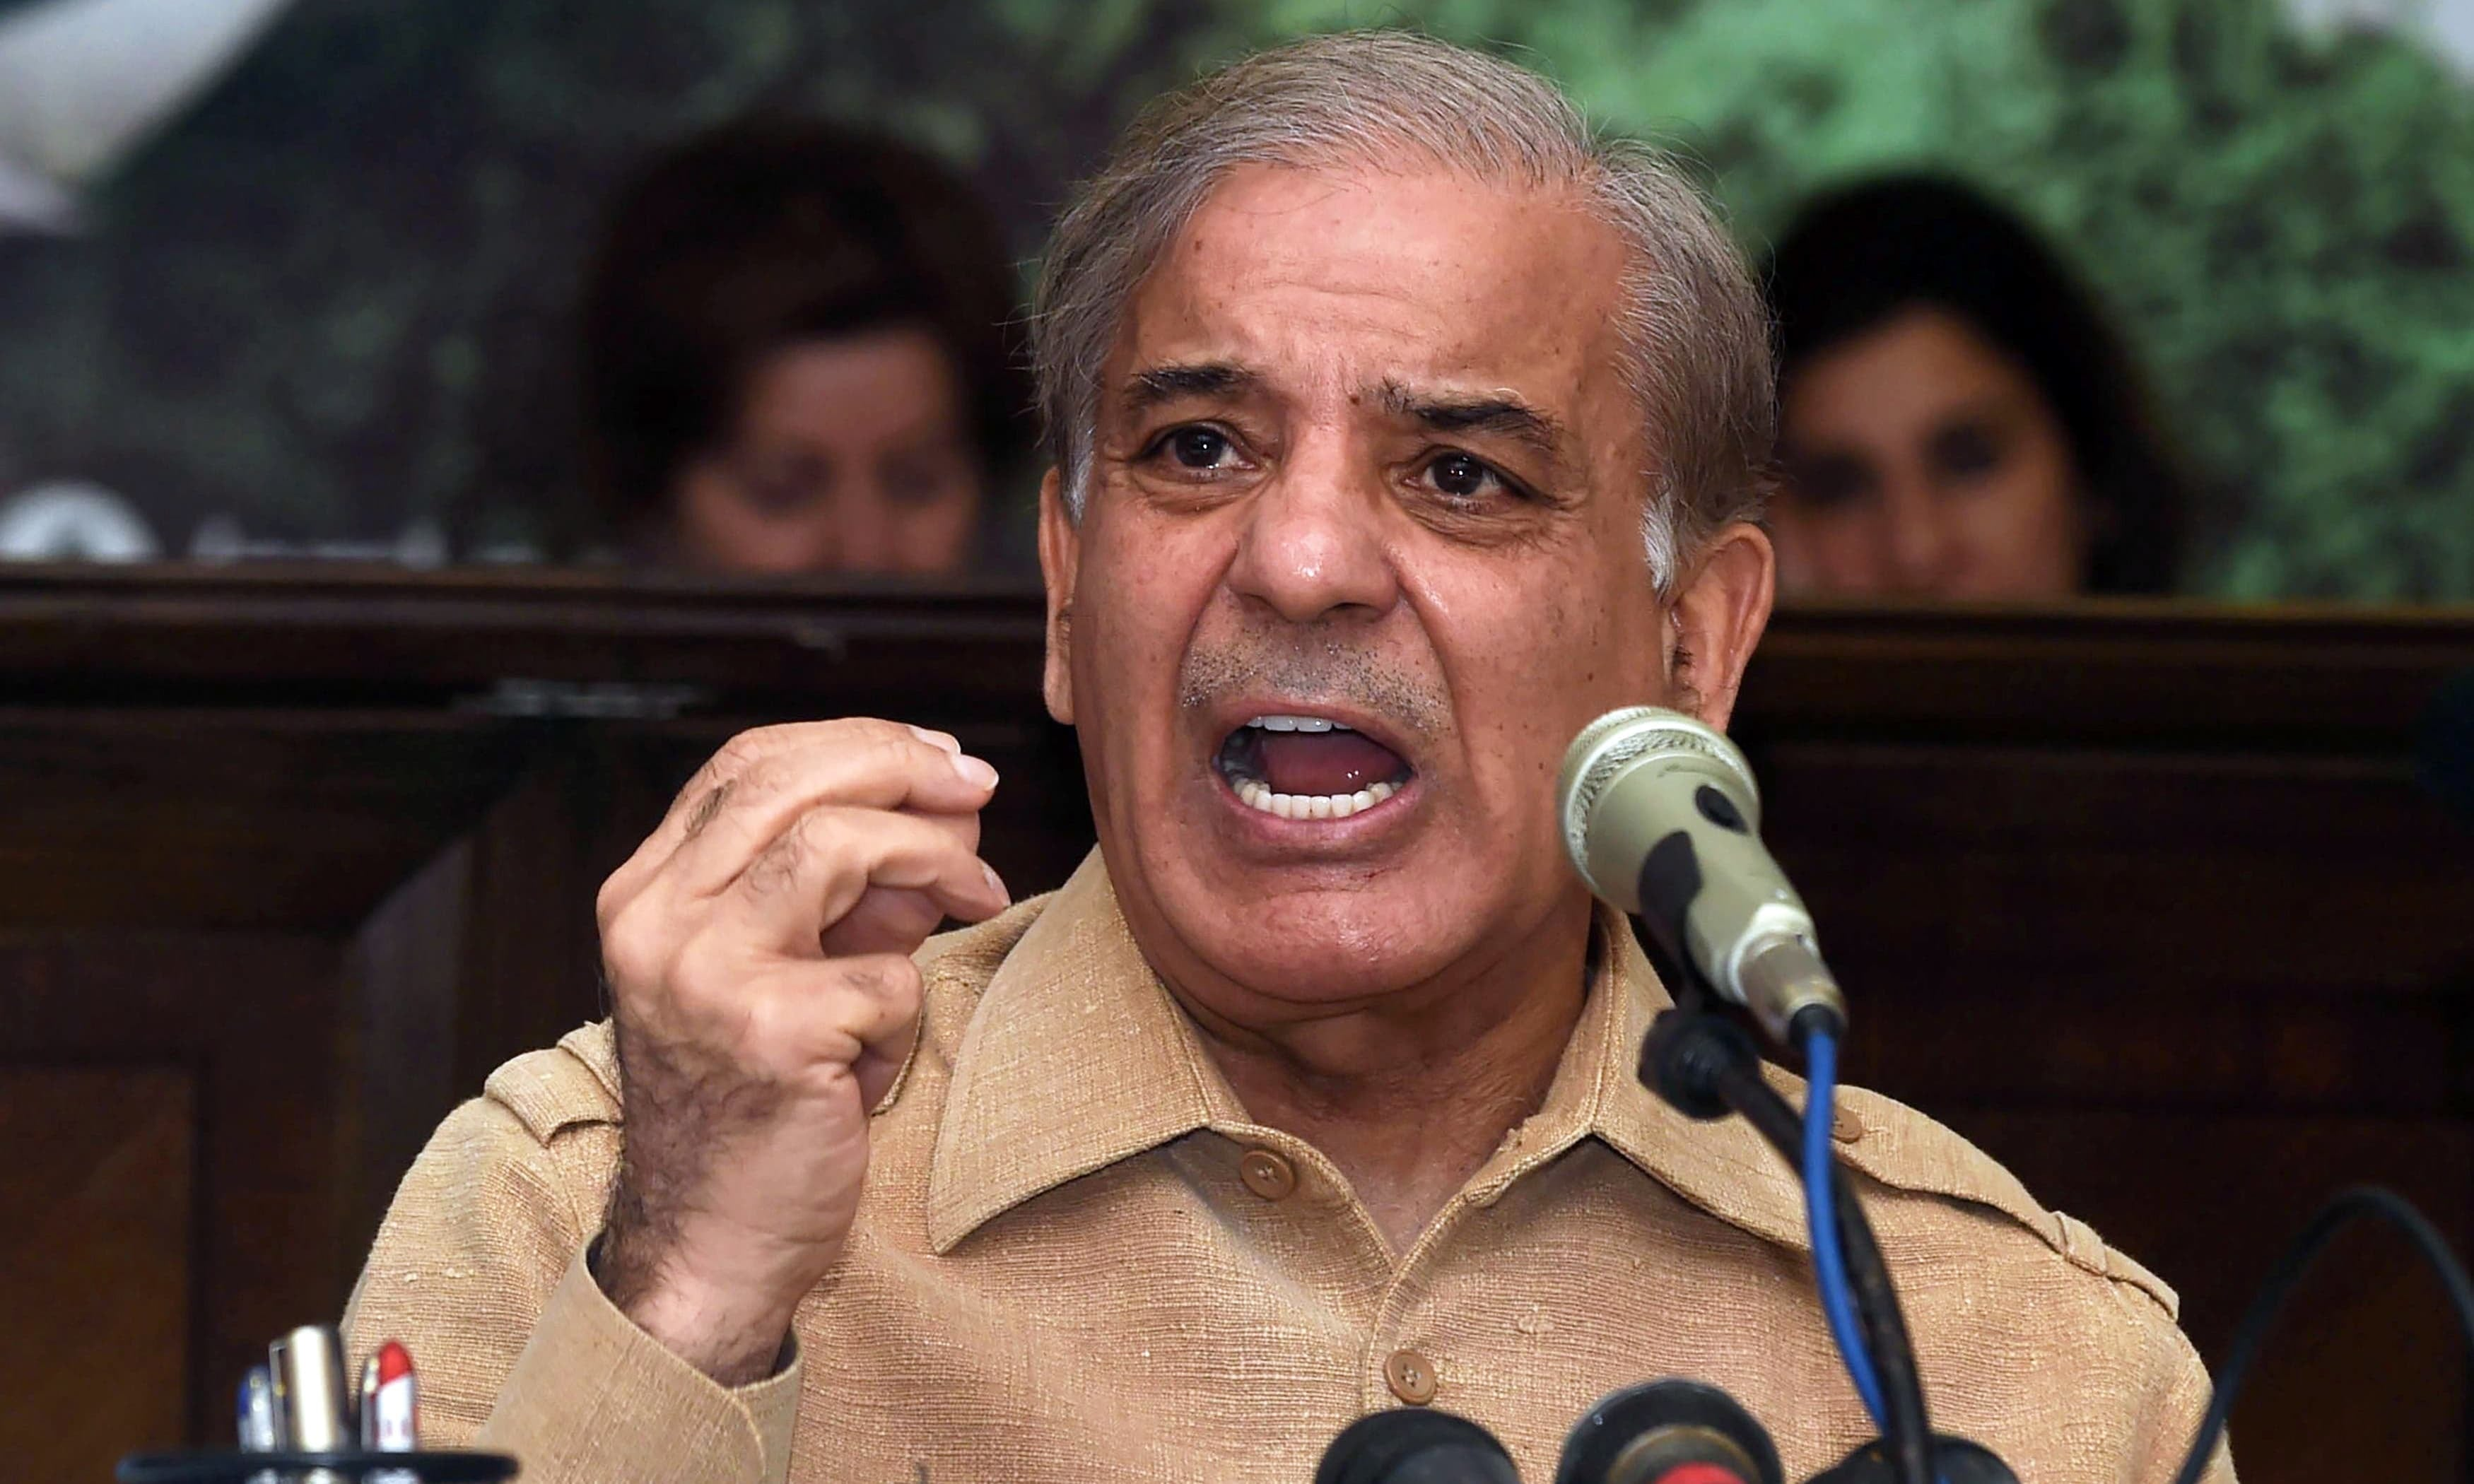 Shahbaz Sharif, brother of ousted Pakistani prime minister Nawaz Sharif, and head of the Pakistan Muslim League-Nawaz (PML-N), addresses a press conference after his brother's sentencing, in Lahore on July 6, 2018. Pakistan's former prime minister Nawaz Sharif was sentenced in absentia to 10 years in prison by a corruption court in Islamabad on July 6, lawyers said, dealing a serious blow to his party's troubled campaign ahead of July 25 elections.  / AFP PHOTO / ARIF ALI — AFP or licensors